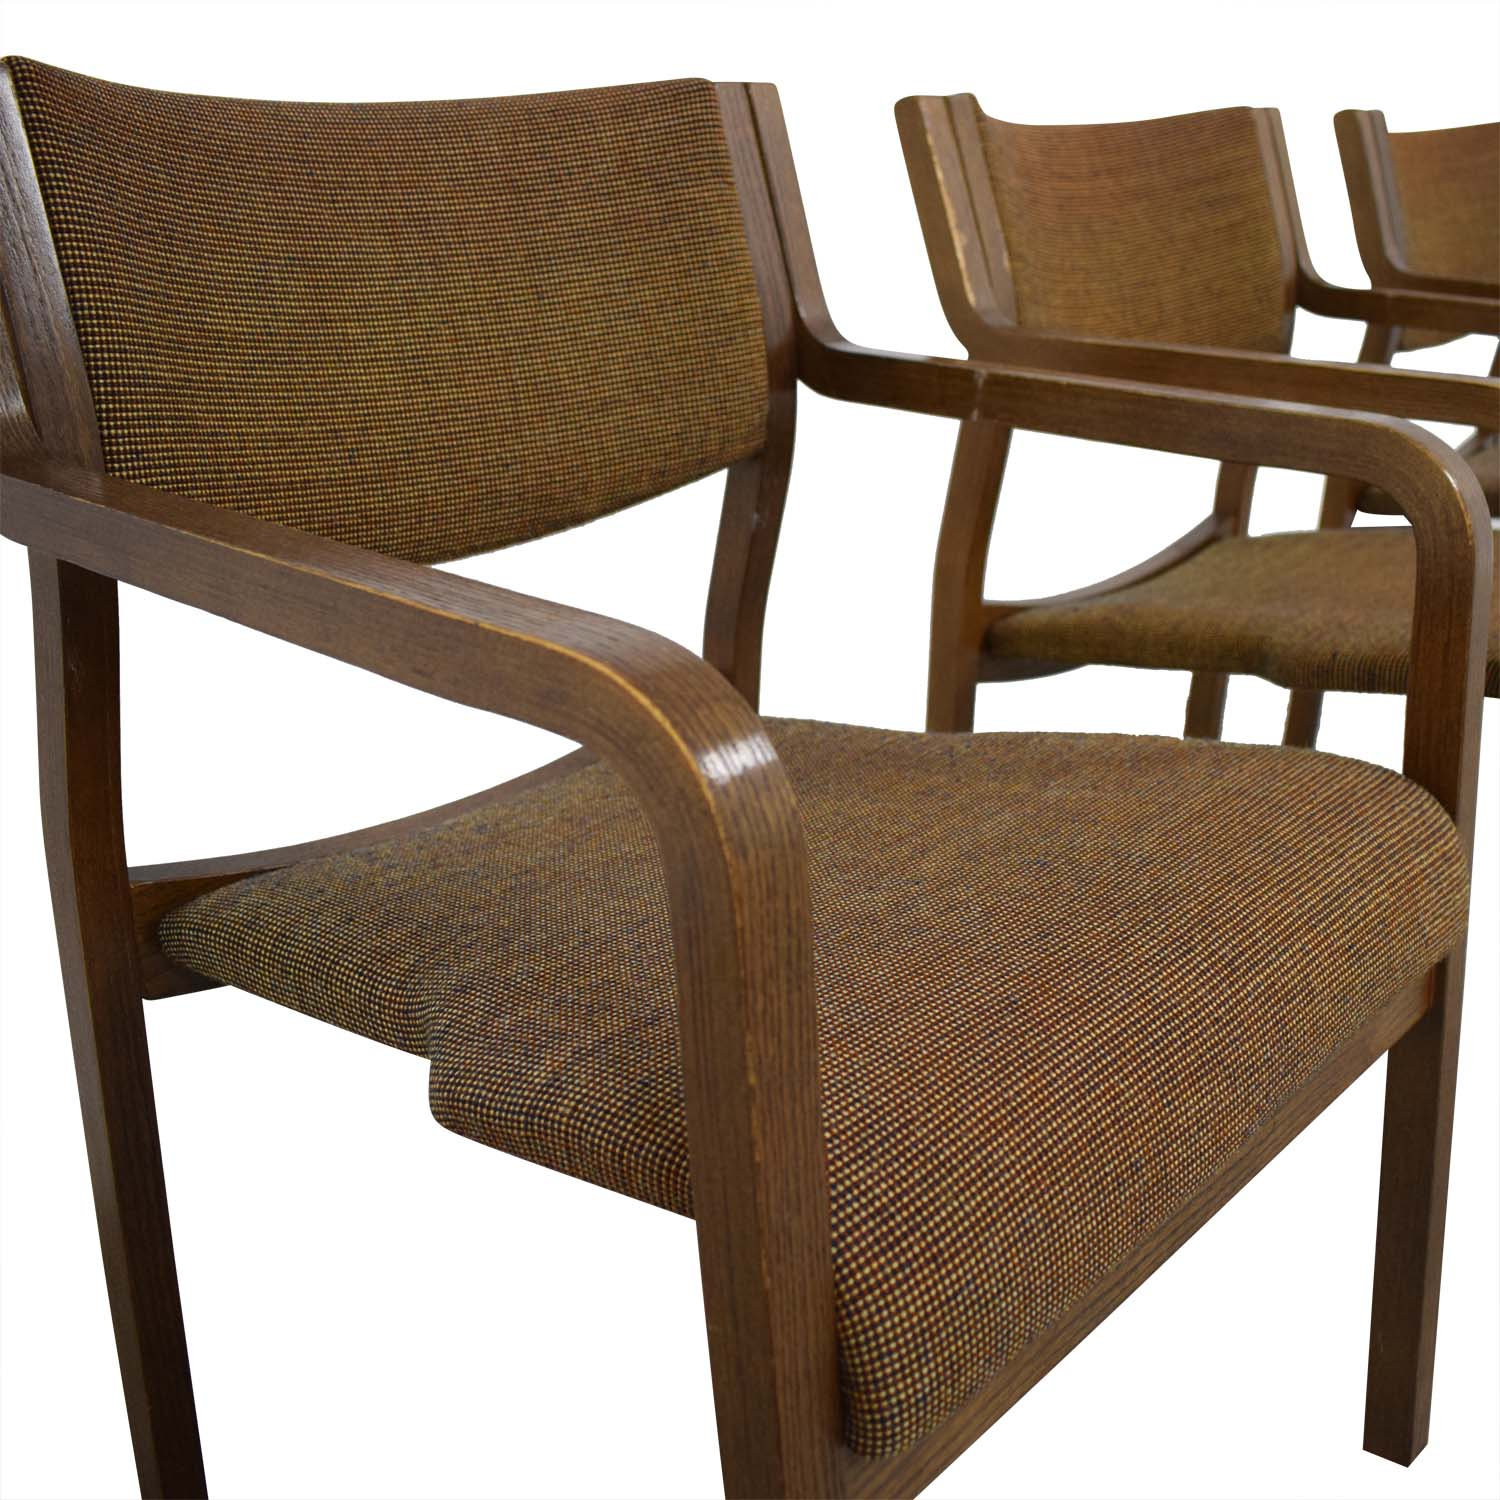 Buy Vintage Furniture: Thonet Thonet Bentwood Vintage Chairs / Chairs